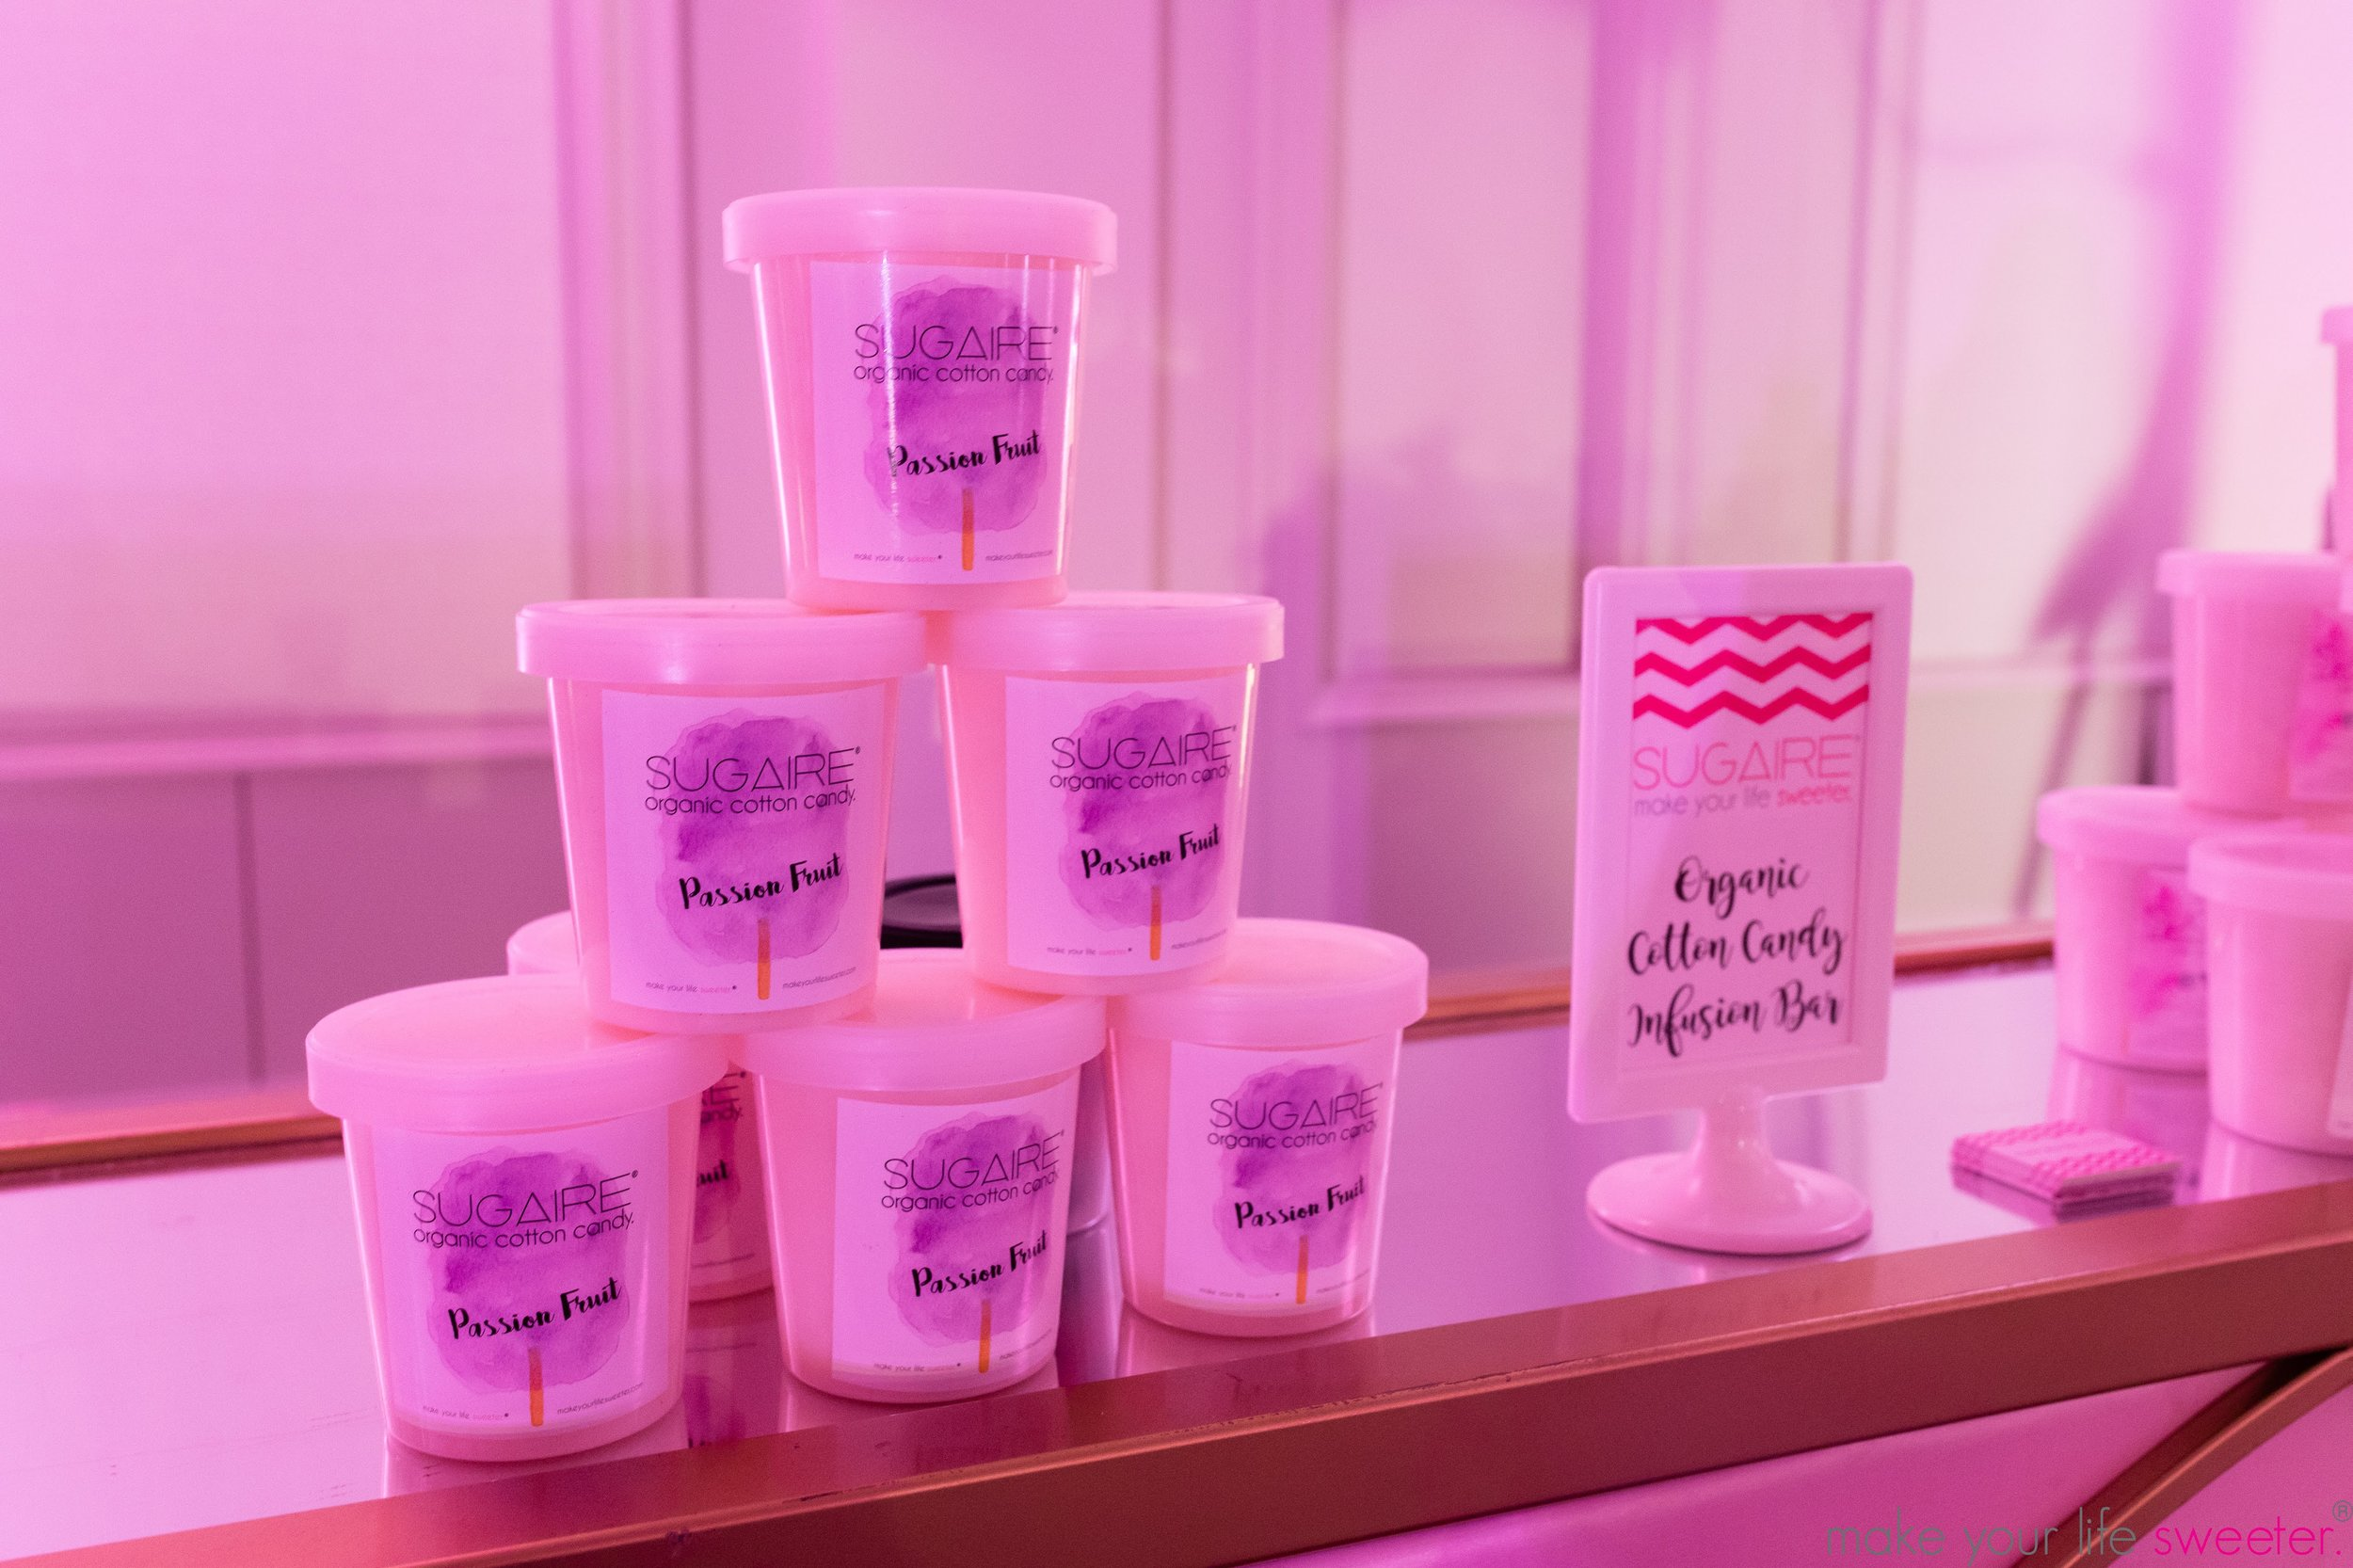 Make Your Life Sweeter Events - Chopra Birthday Party: Sugaire Organic Cotton Candy